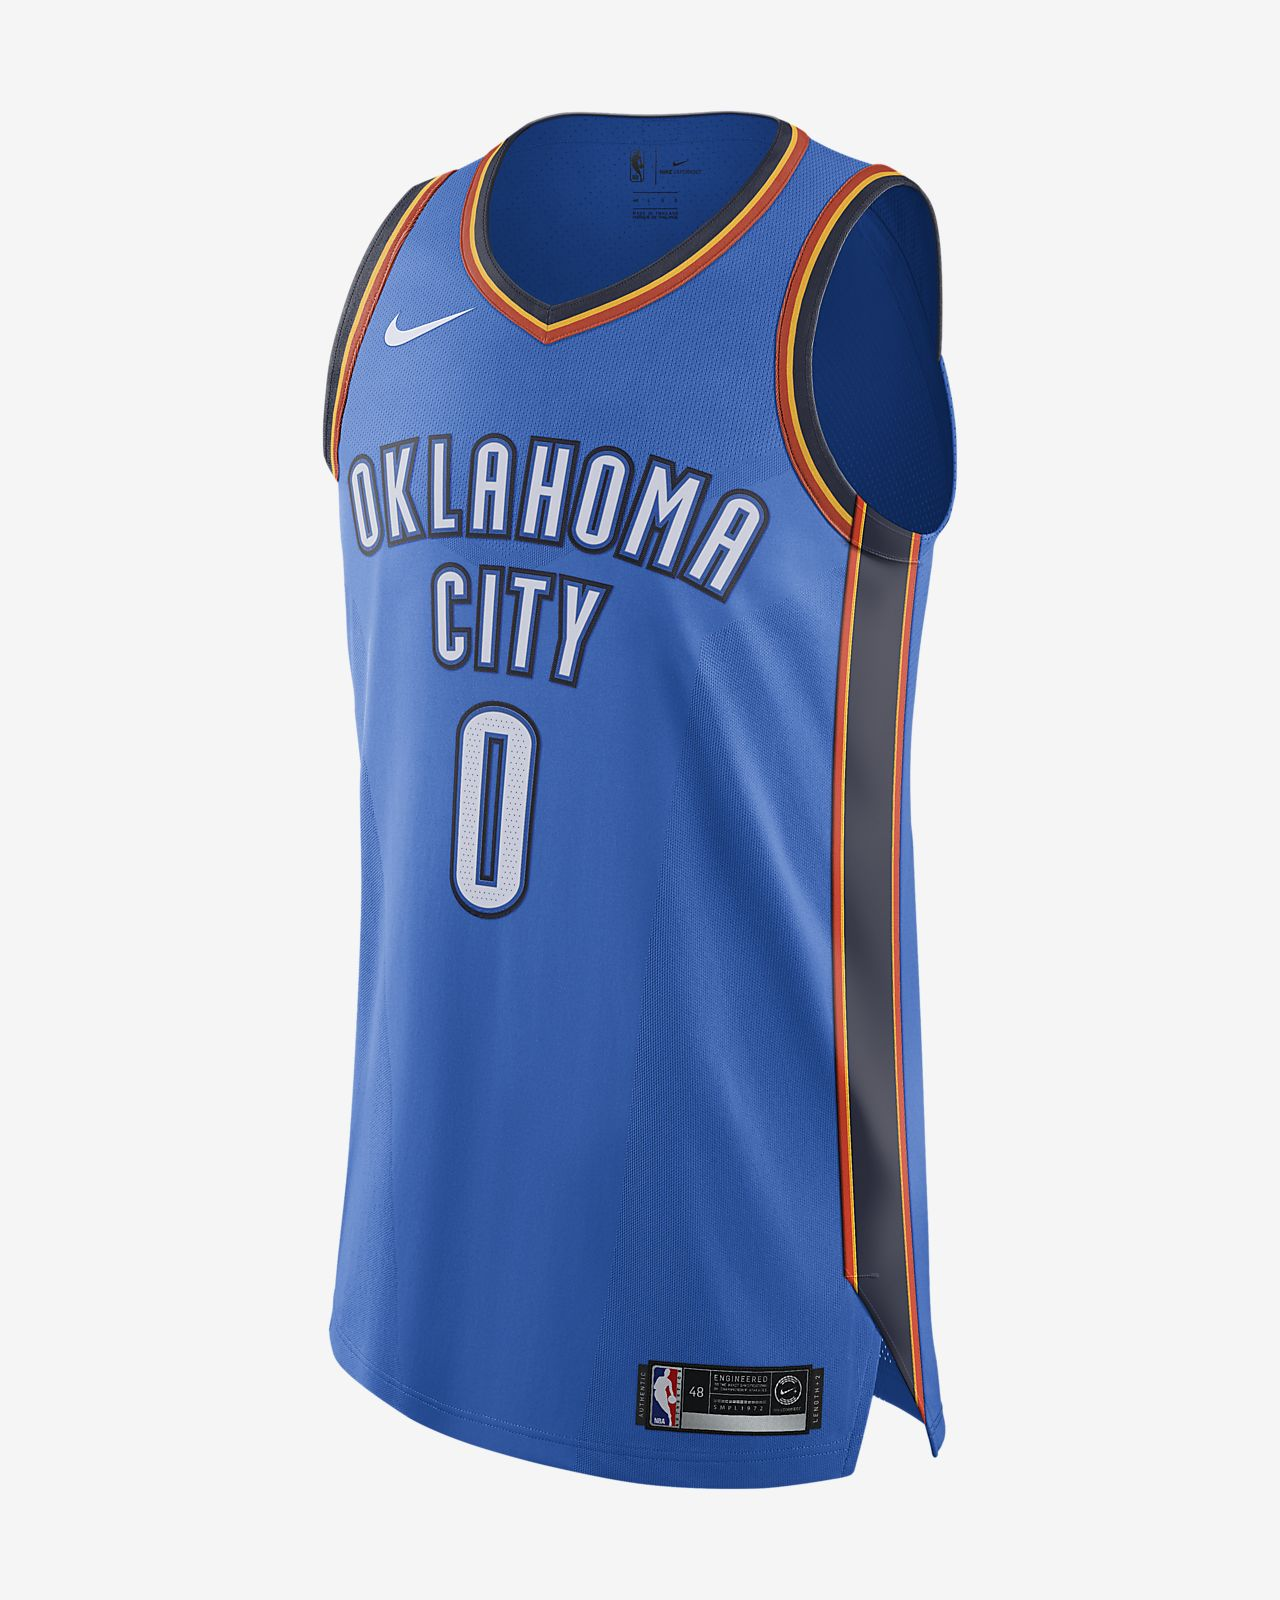 Camiseta Nike NBA Authentic Jersey Russell Westbrook Thunder Icon Edition